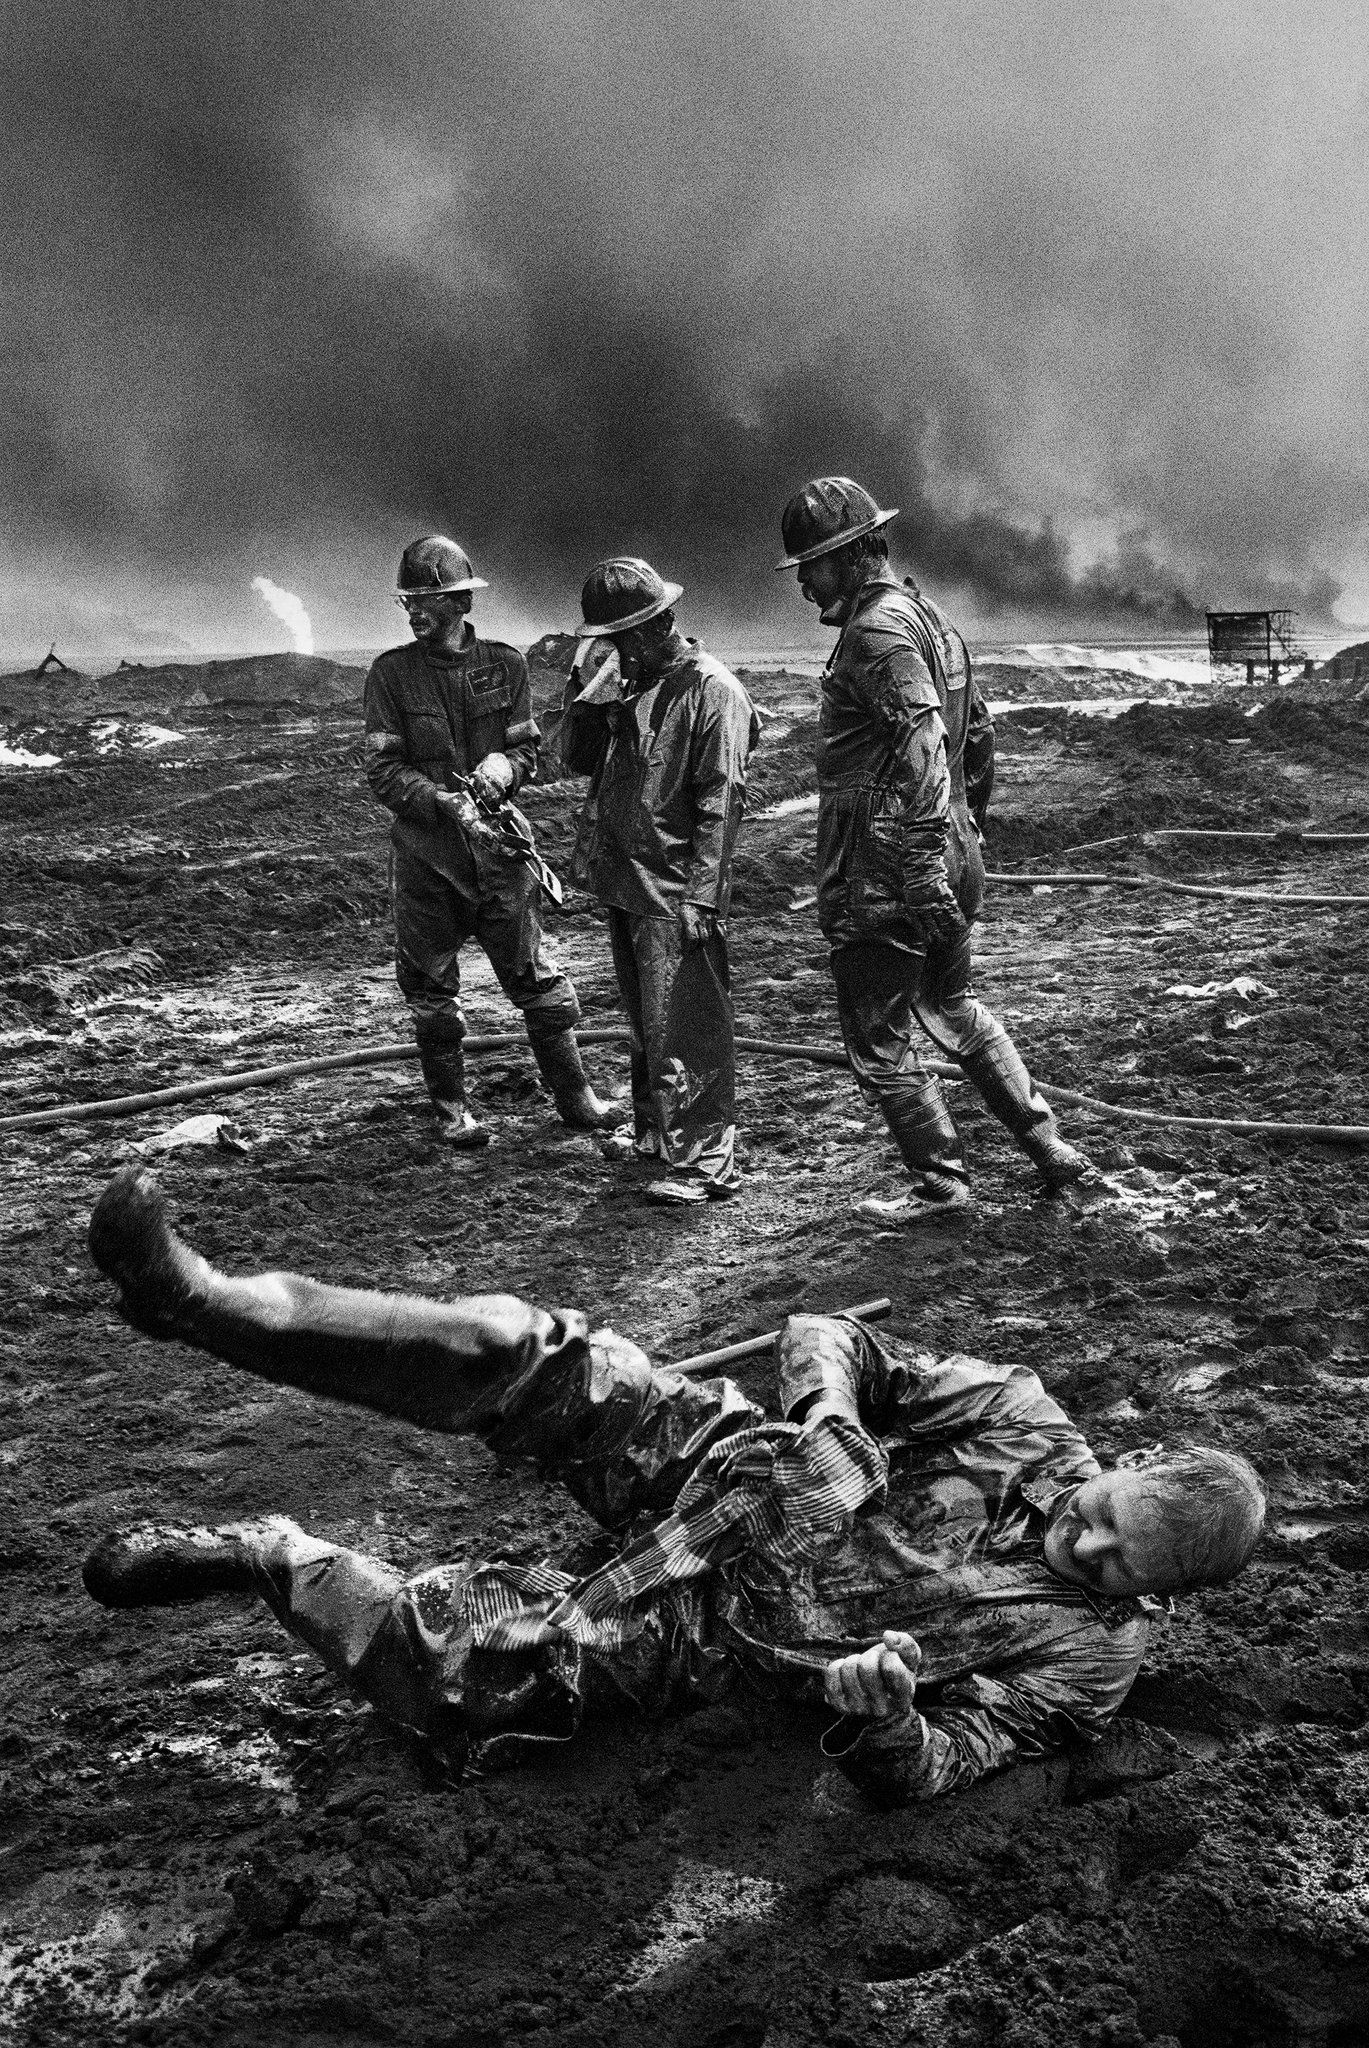 Sebastiao Salgado S Dramatic Workers Photos Overworked Underpaid